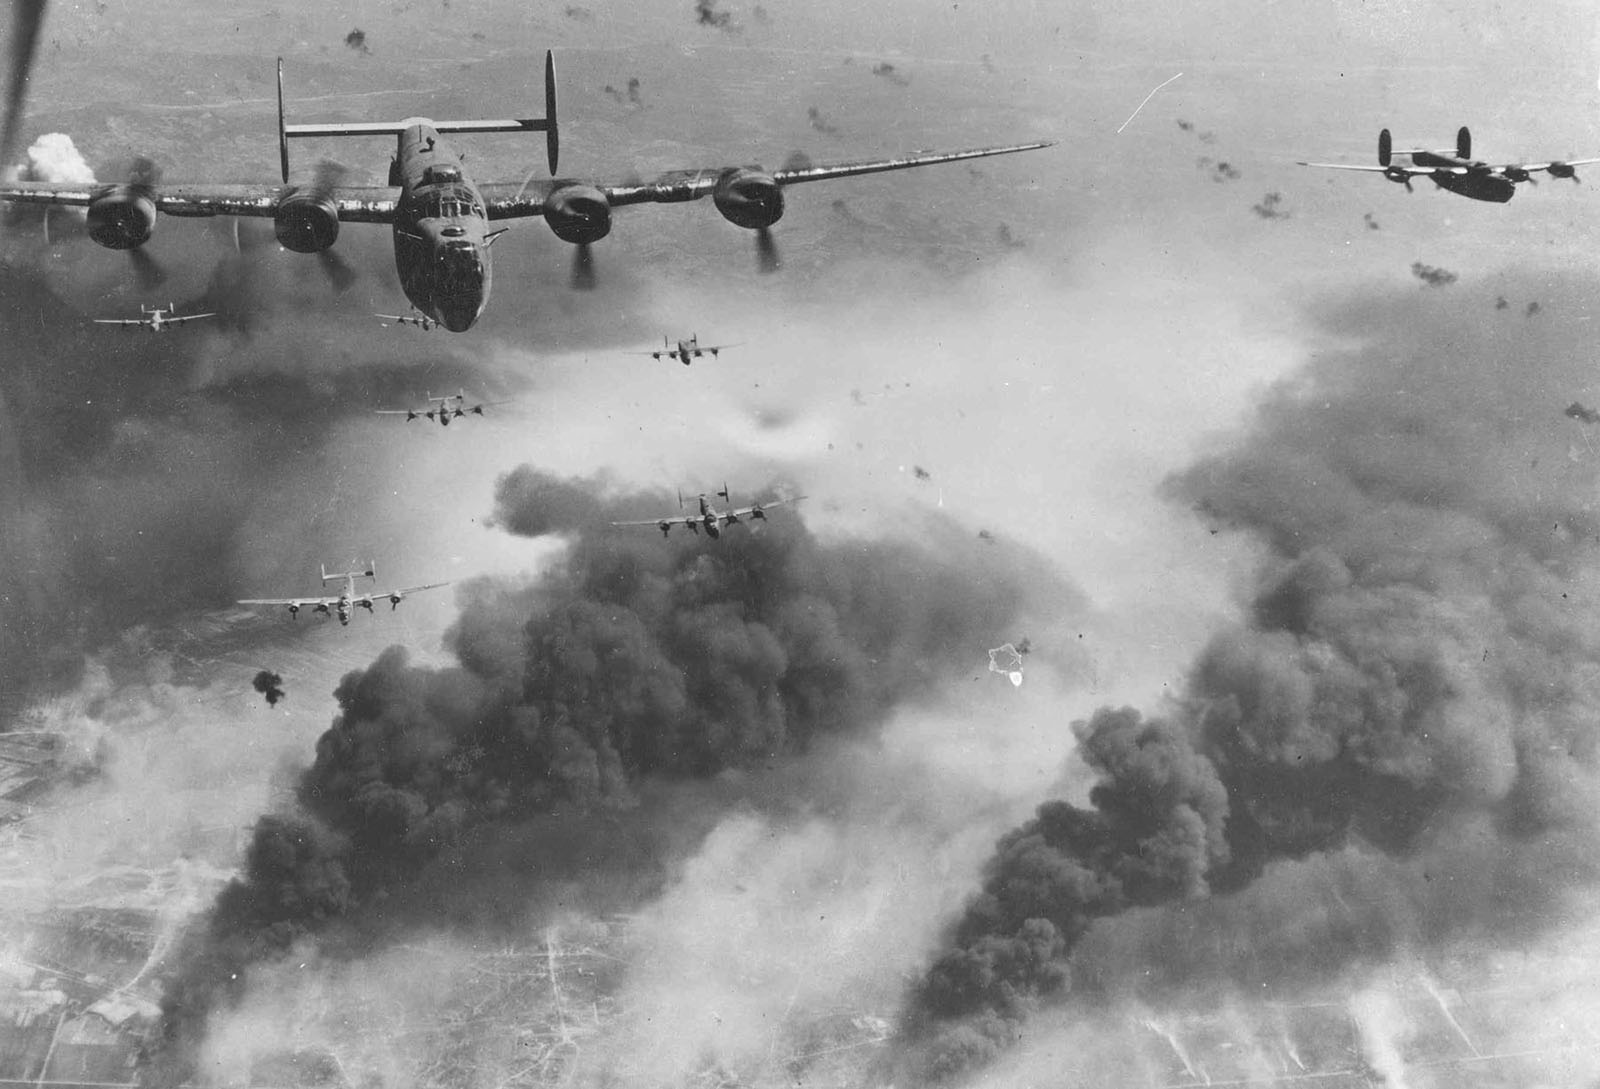 http://www.americanyawp.com/text/wp-content/uploads/B-24Ds_fly_over_Polesti_during_World_War_II.jpg